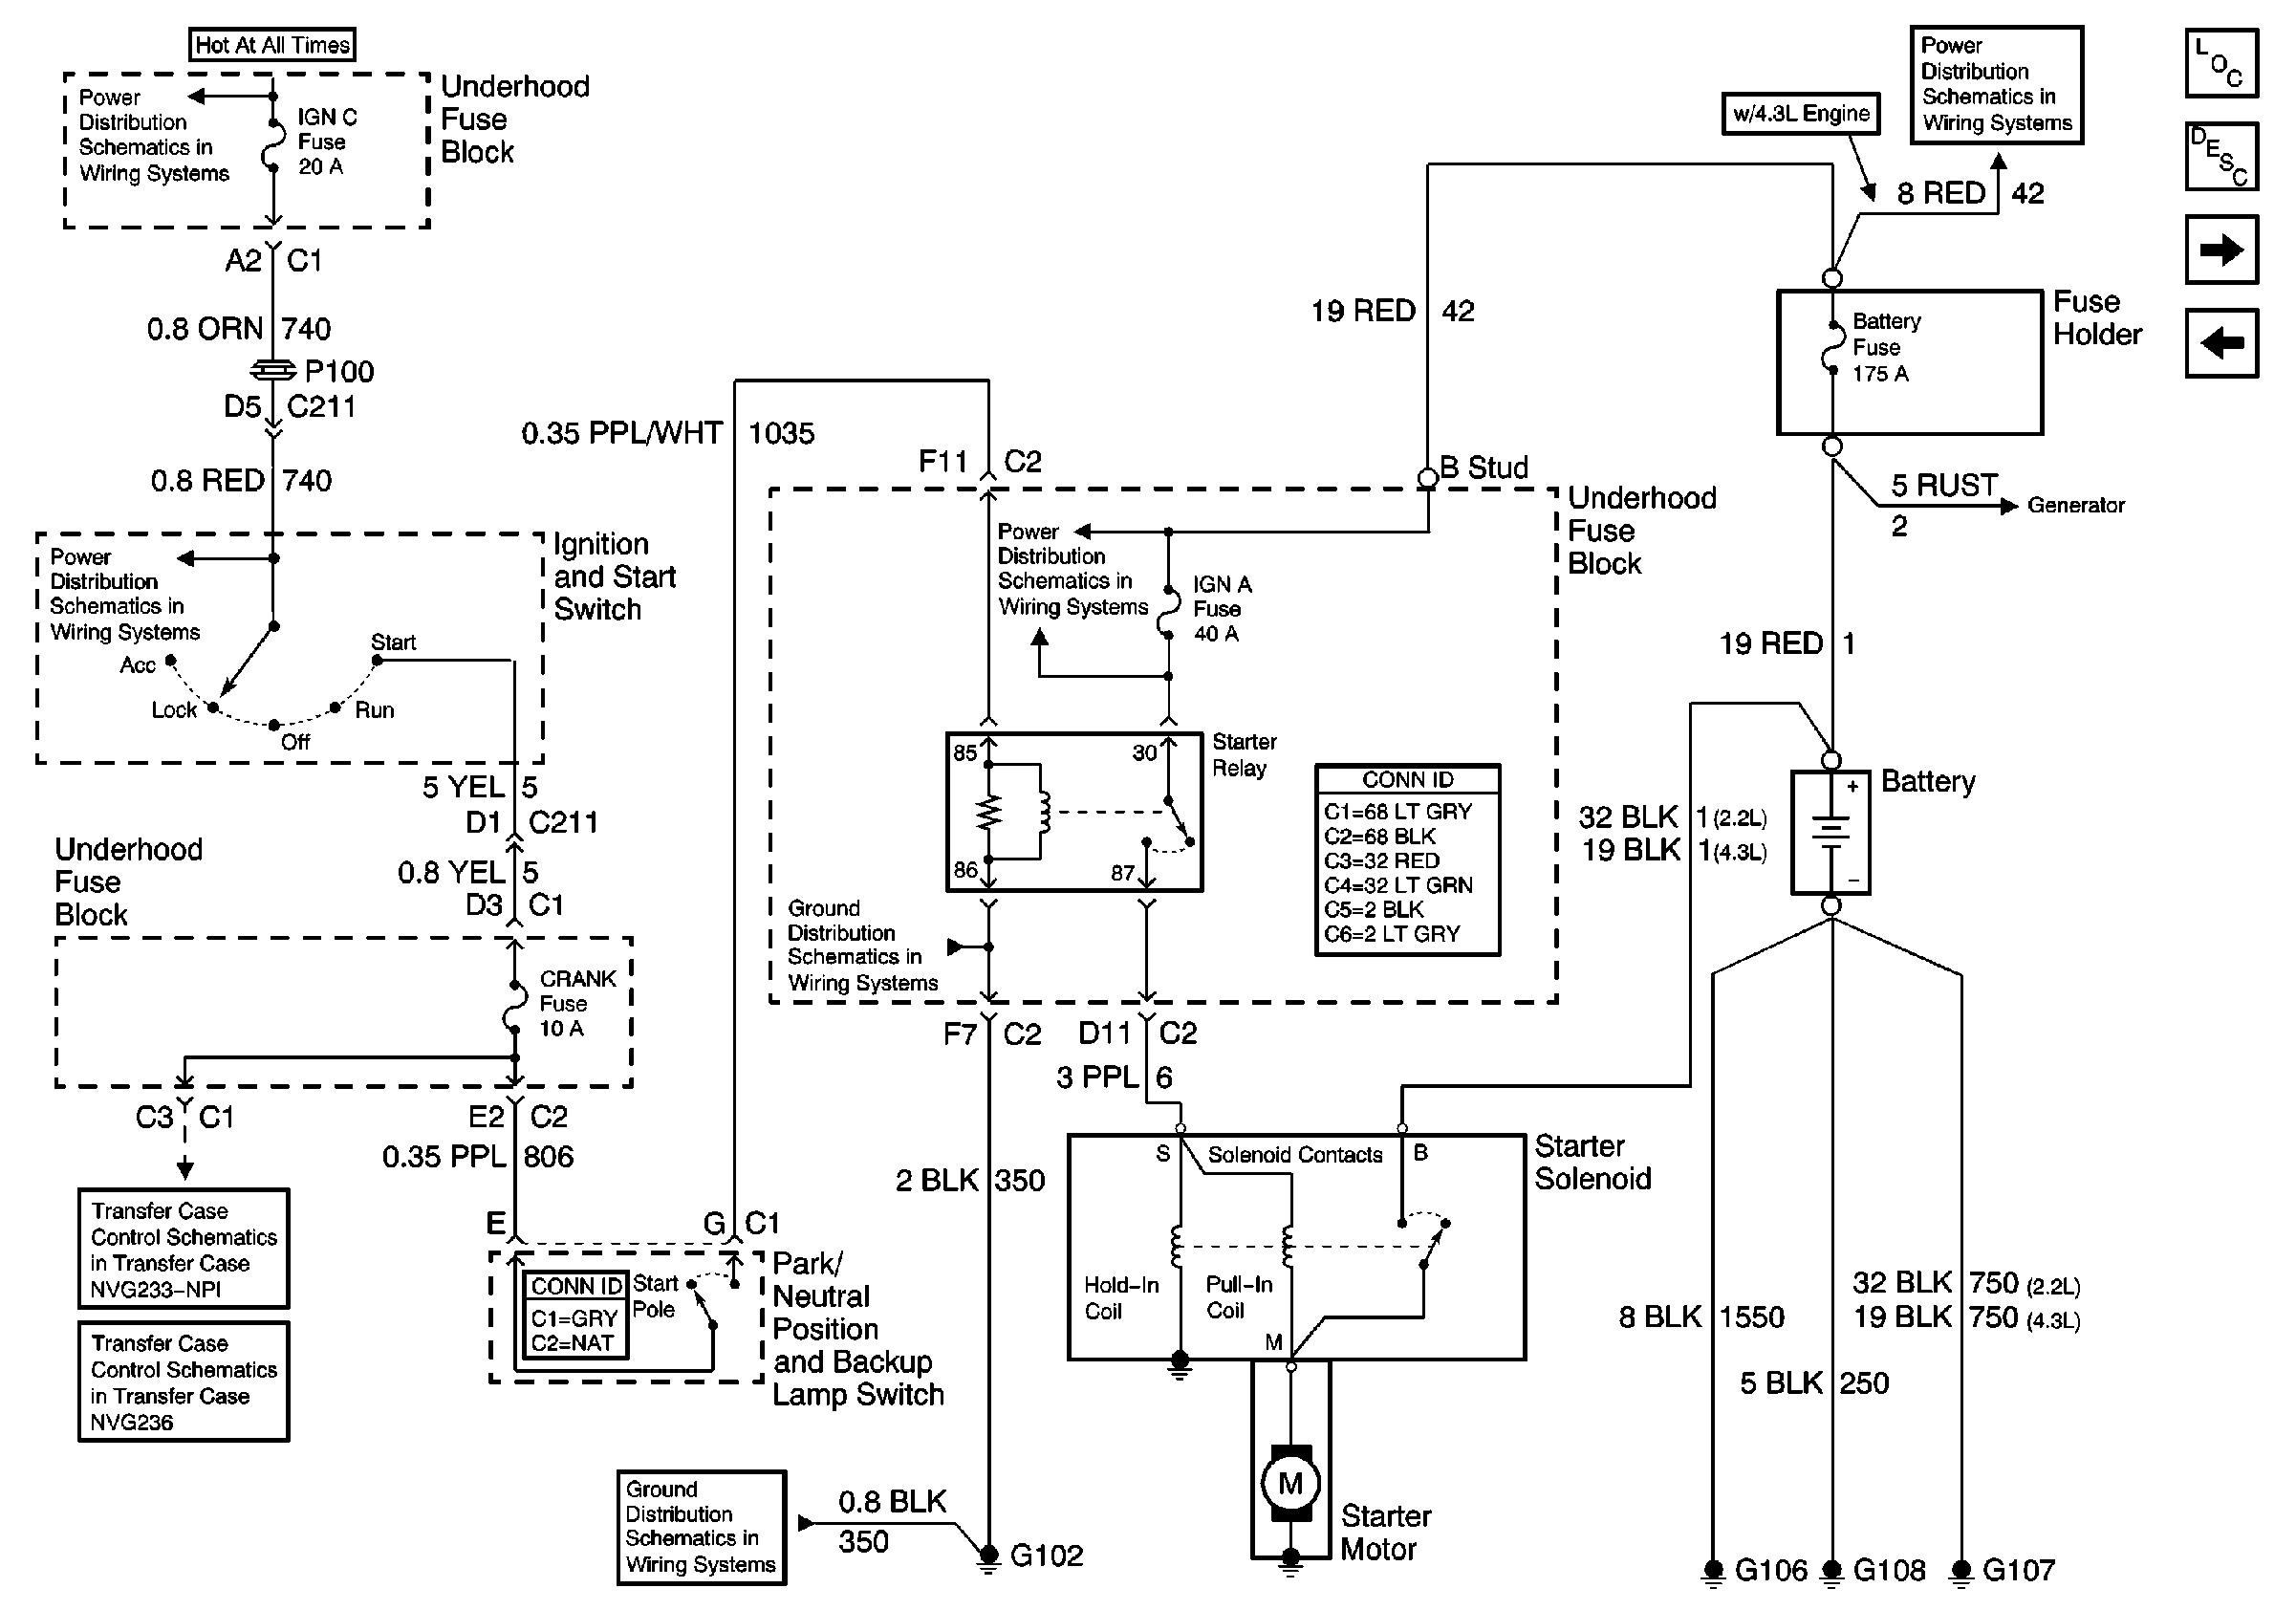 gm starter wiring diagram free download schematic sbc starter wiring diagram free download schematic